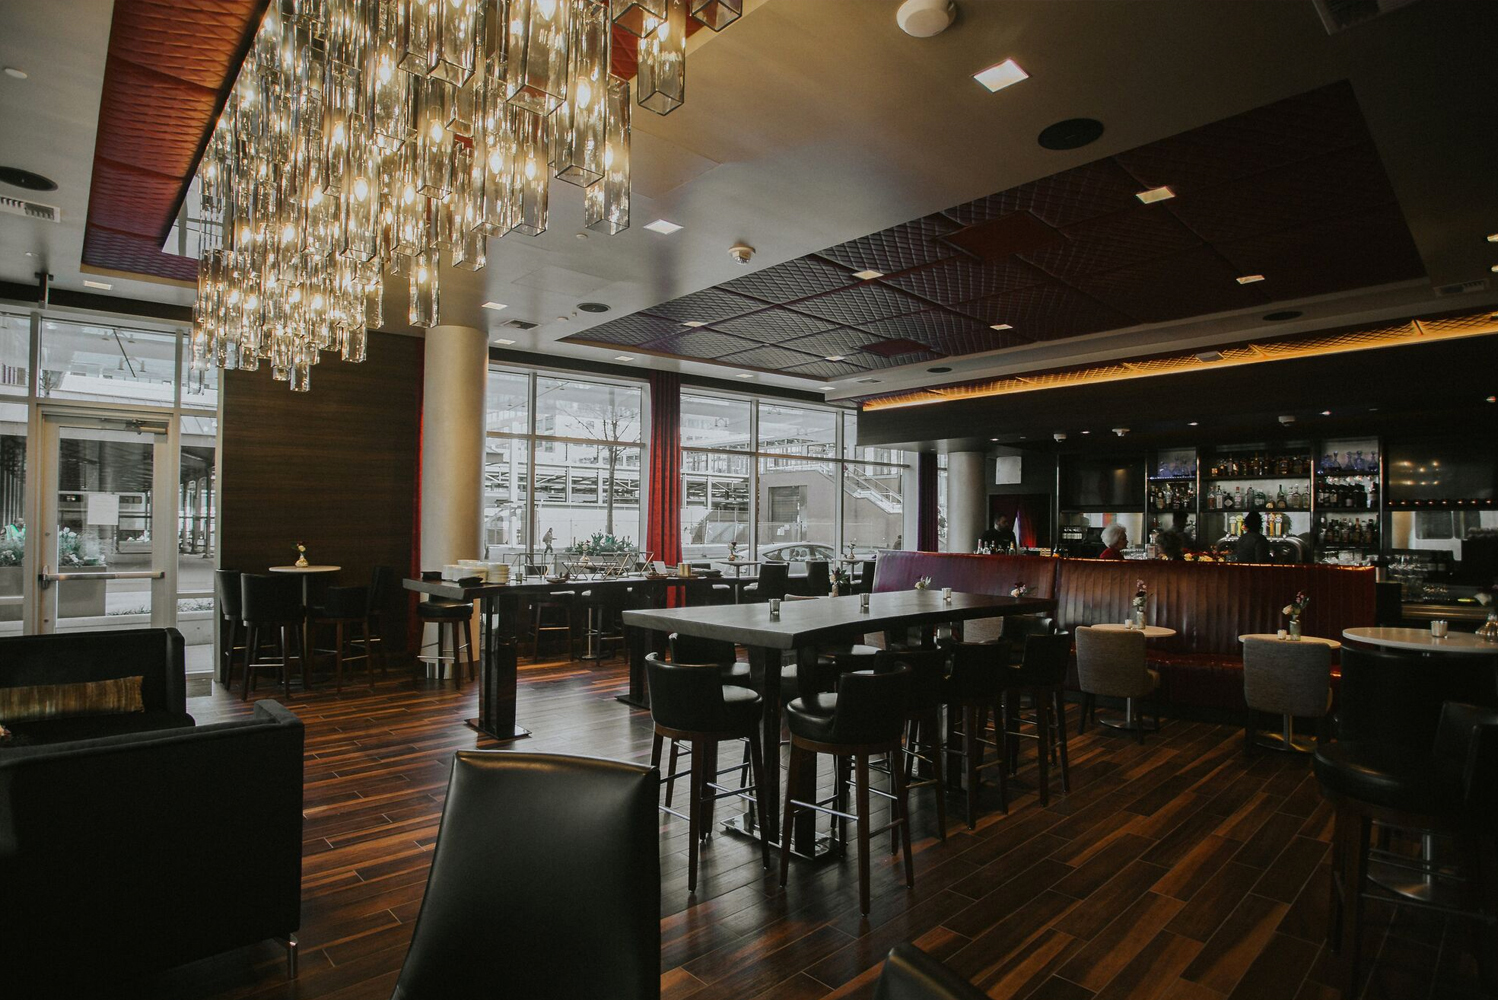 For dining, the property has the Evening Reception, as well as the Zephyr Bar, located in the lobby. Photo credit: Jenna Lynn Photography, courtesy of Embassy Suites by Hilton Seattle Downtown Pioneer Square